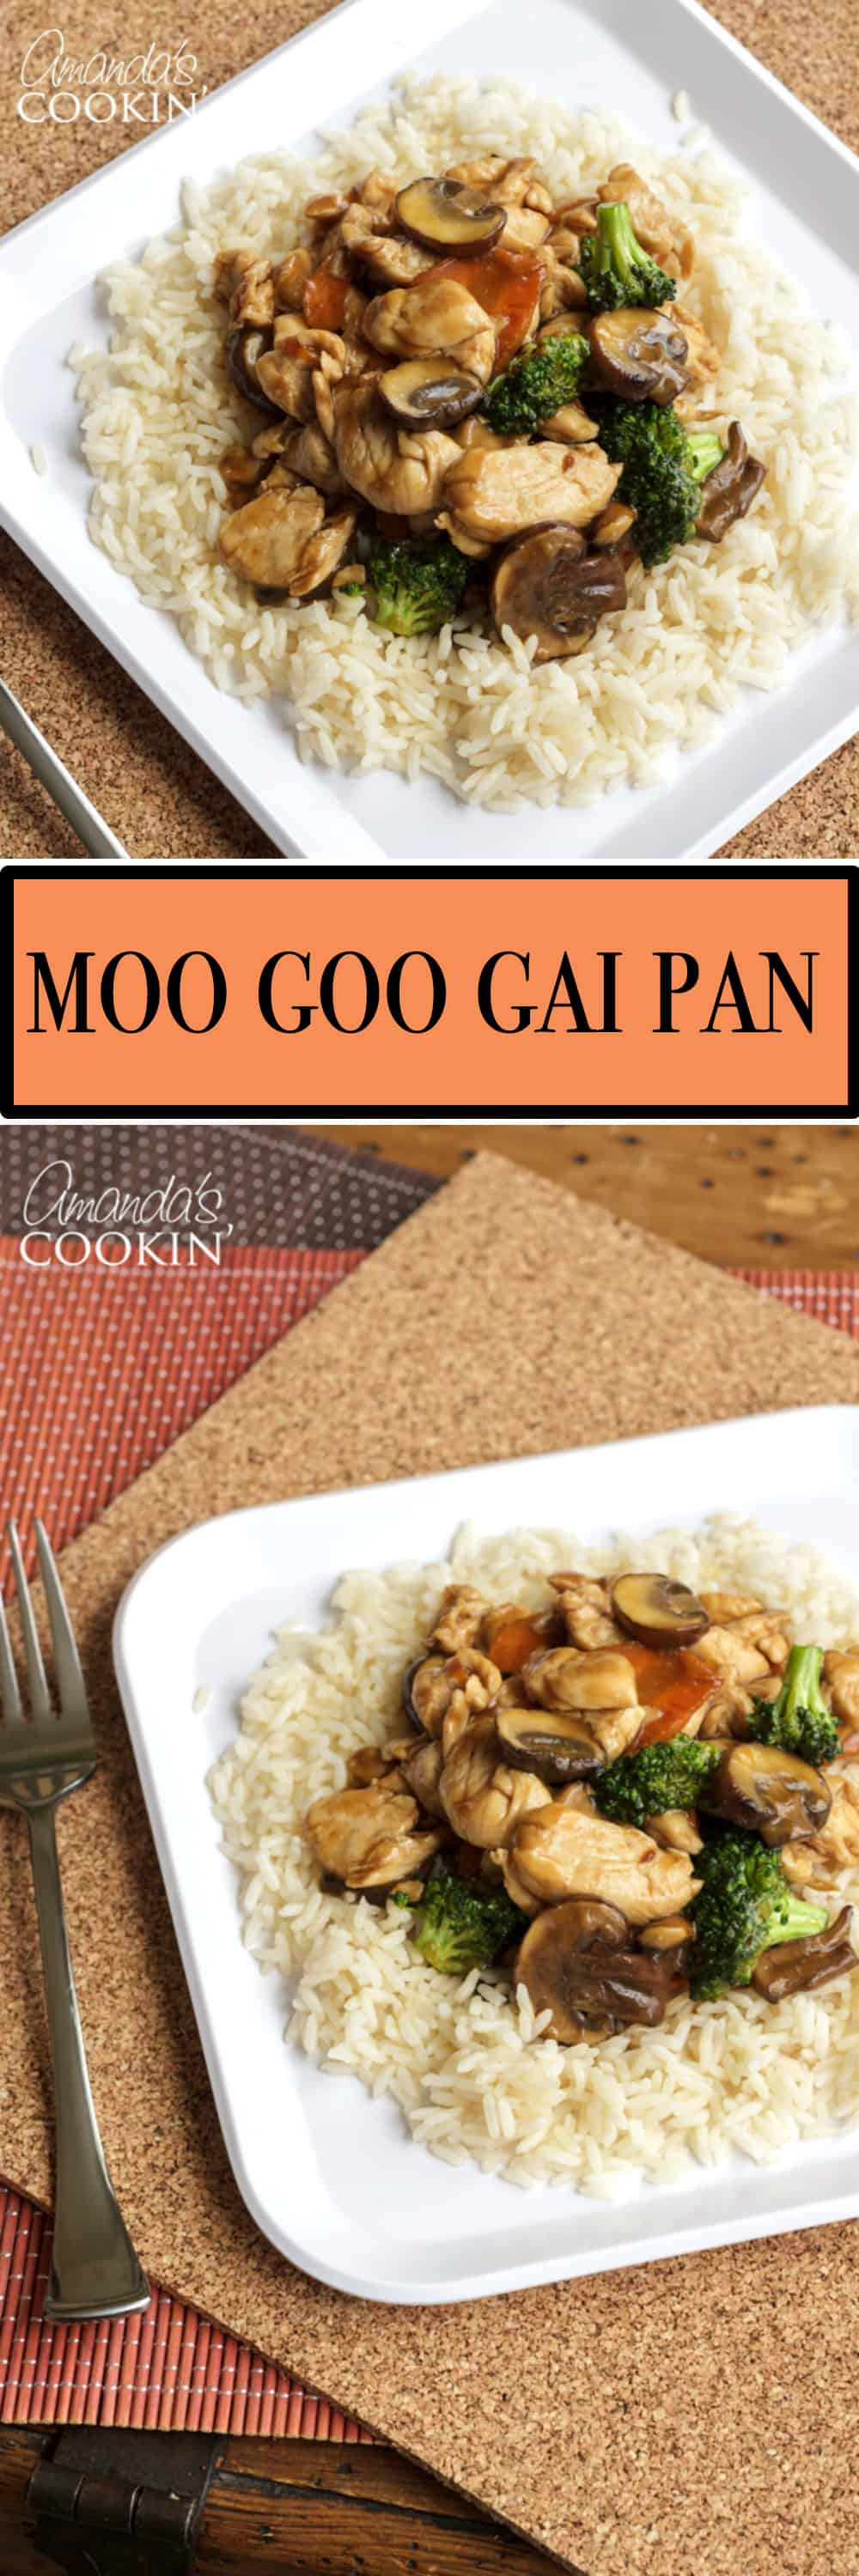 Moo Goo Gai Pan is a delicious stir fly consisting of chicken, mushrooms and vegetables. The vegetables vary from cook to cook, making it quite versatile!